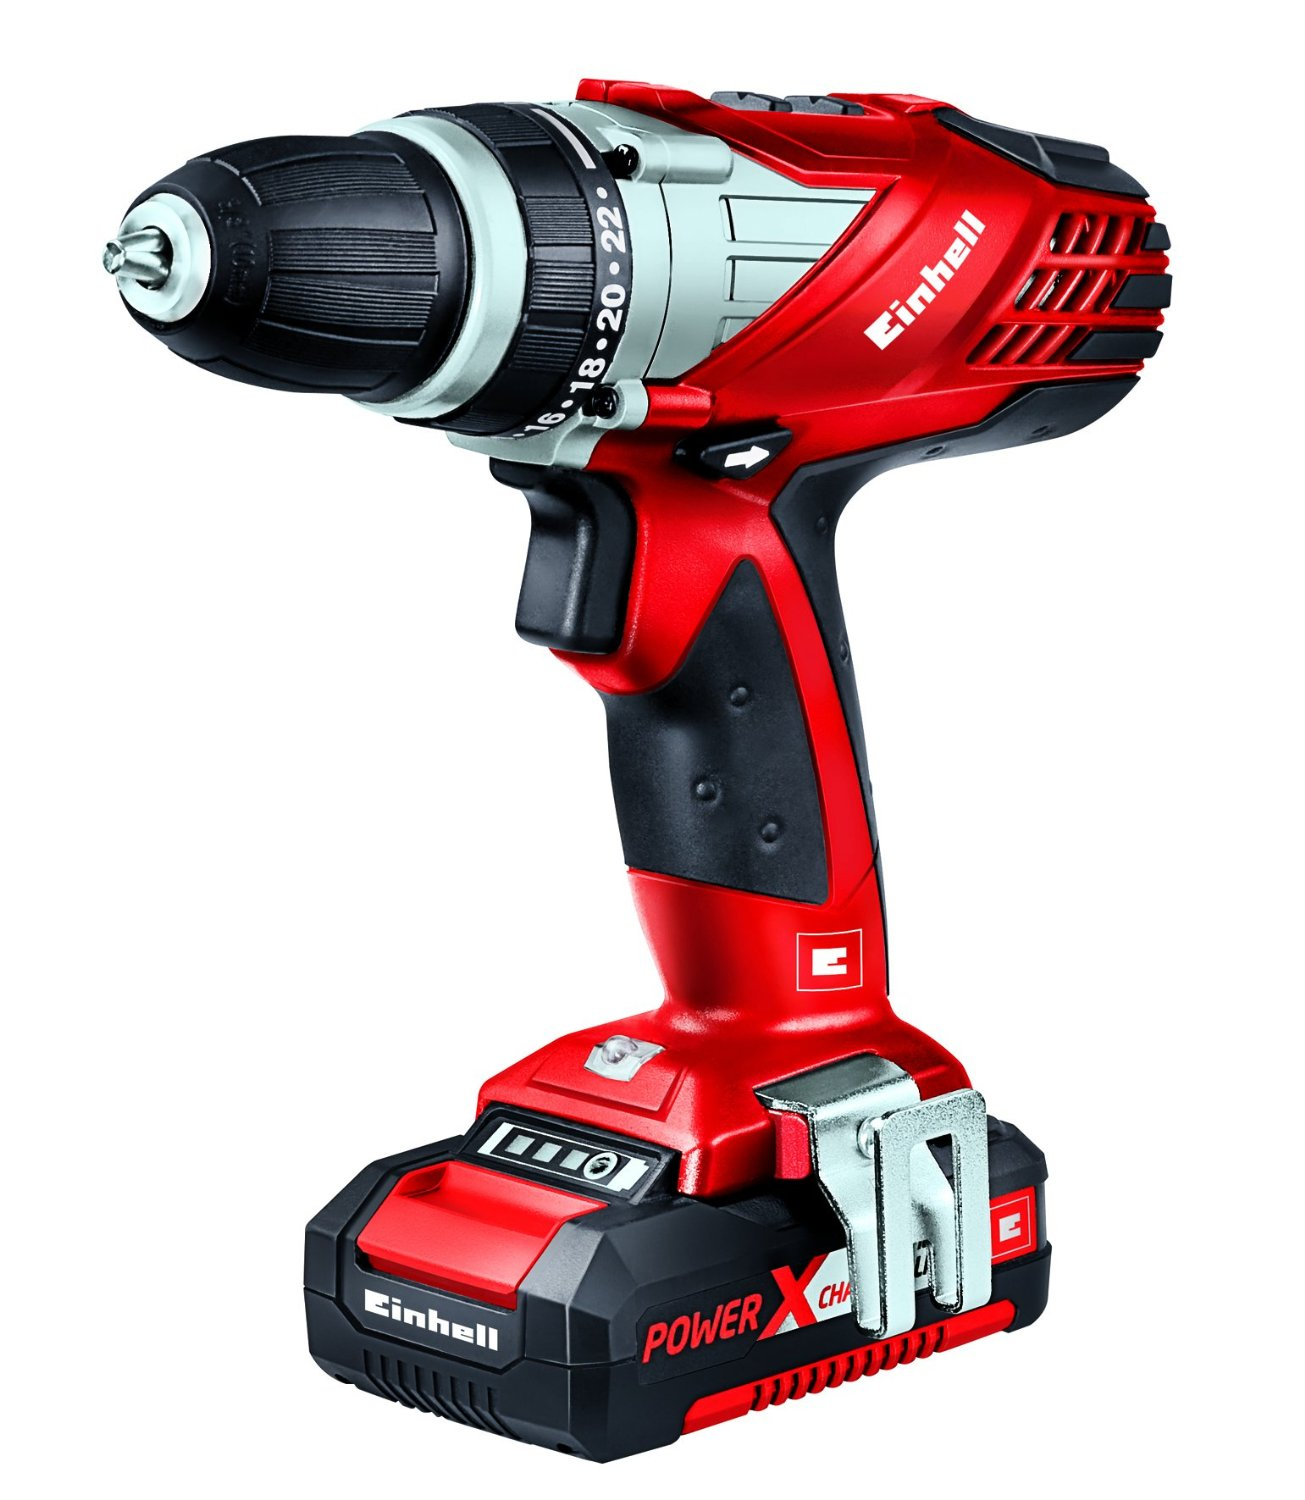 Einhell TE-CD 18 Li Perceuse visseuse sans fil 1